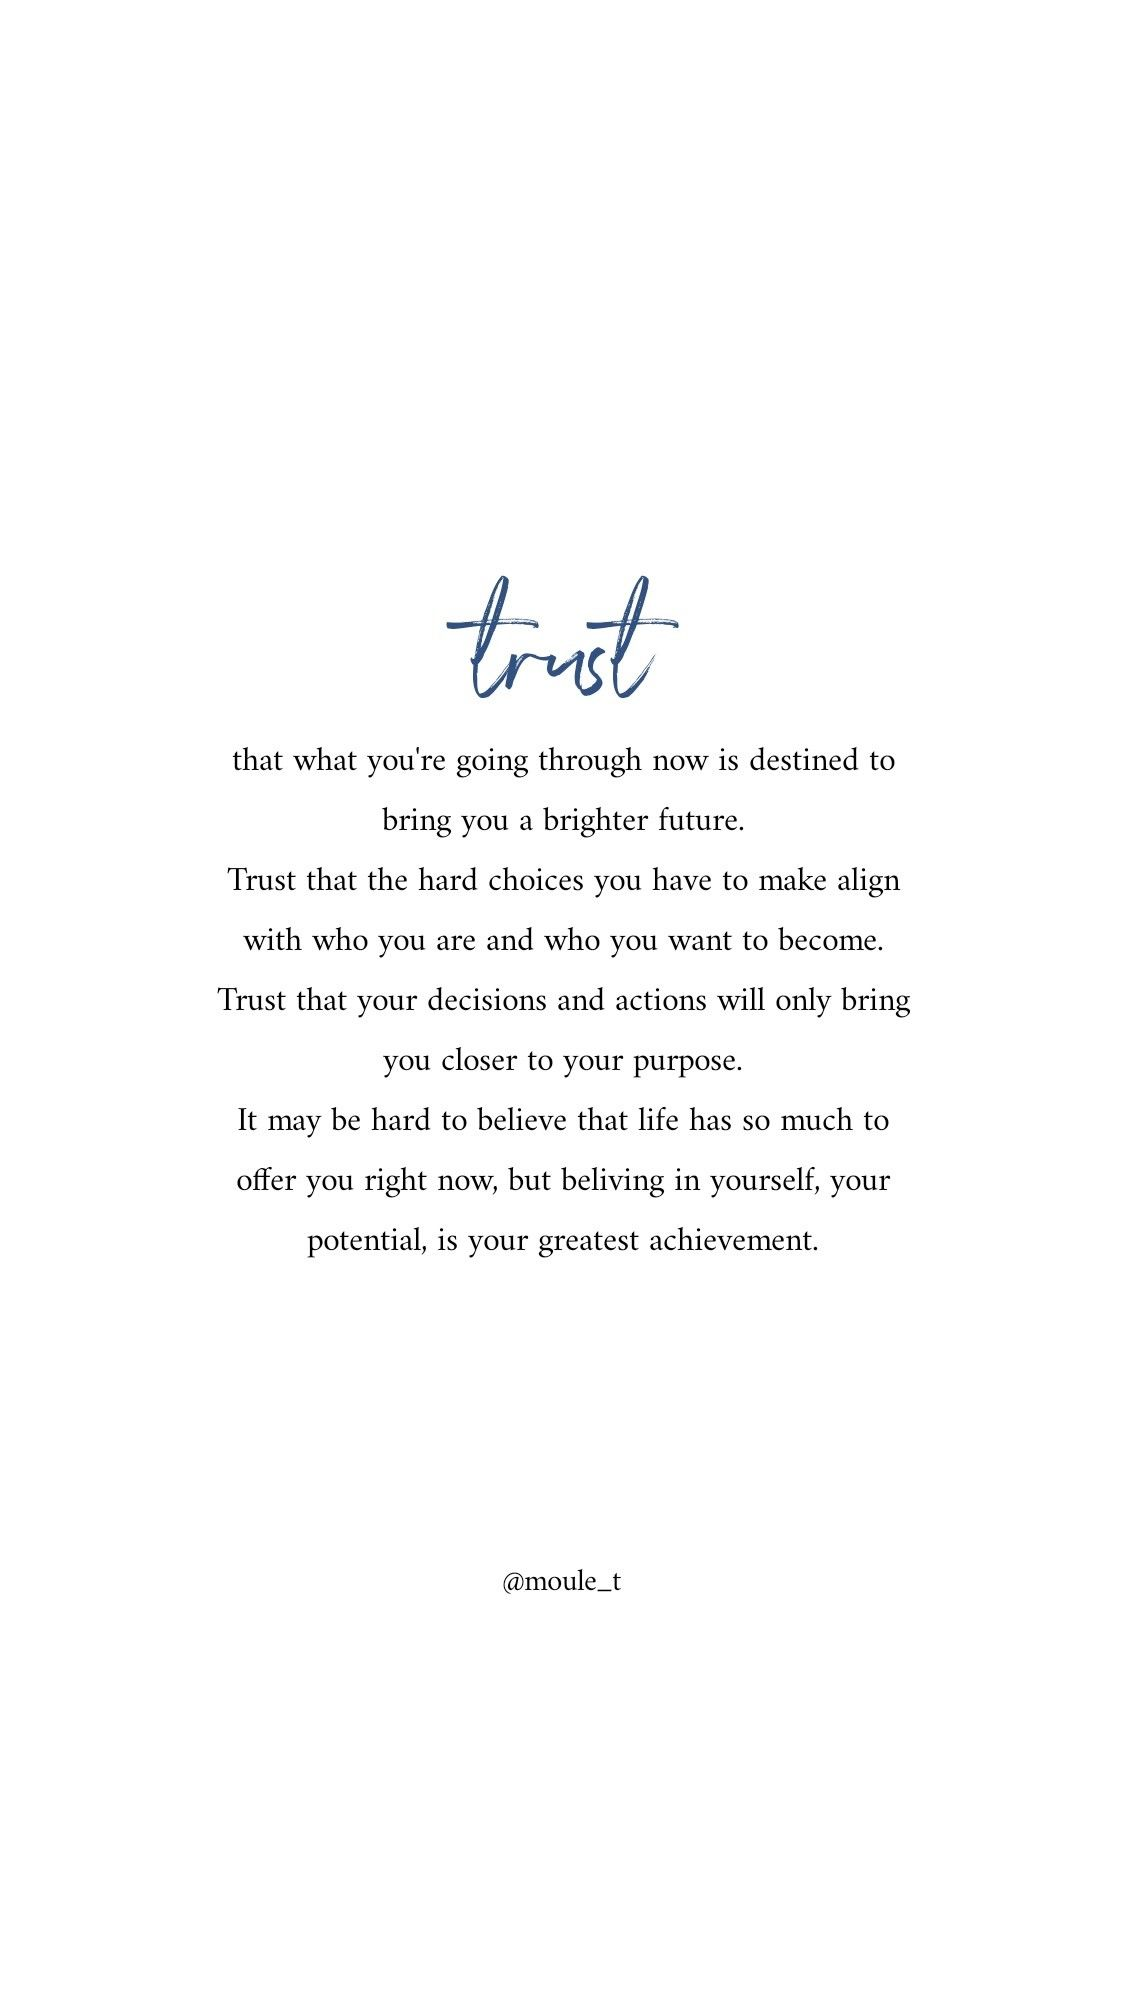 Trust that your journey is leading you to a brighter future